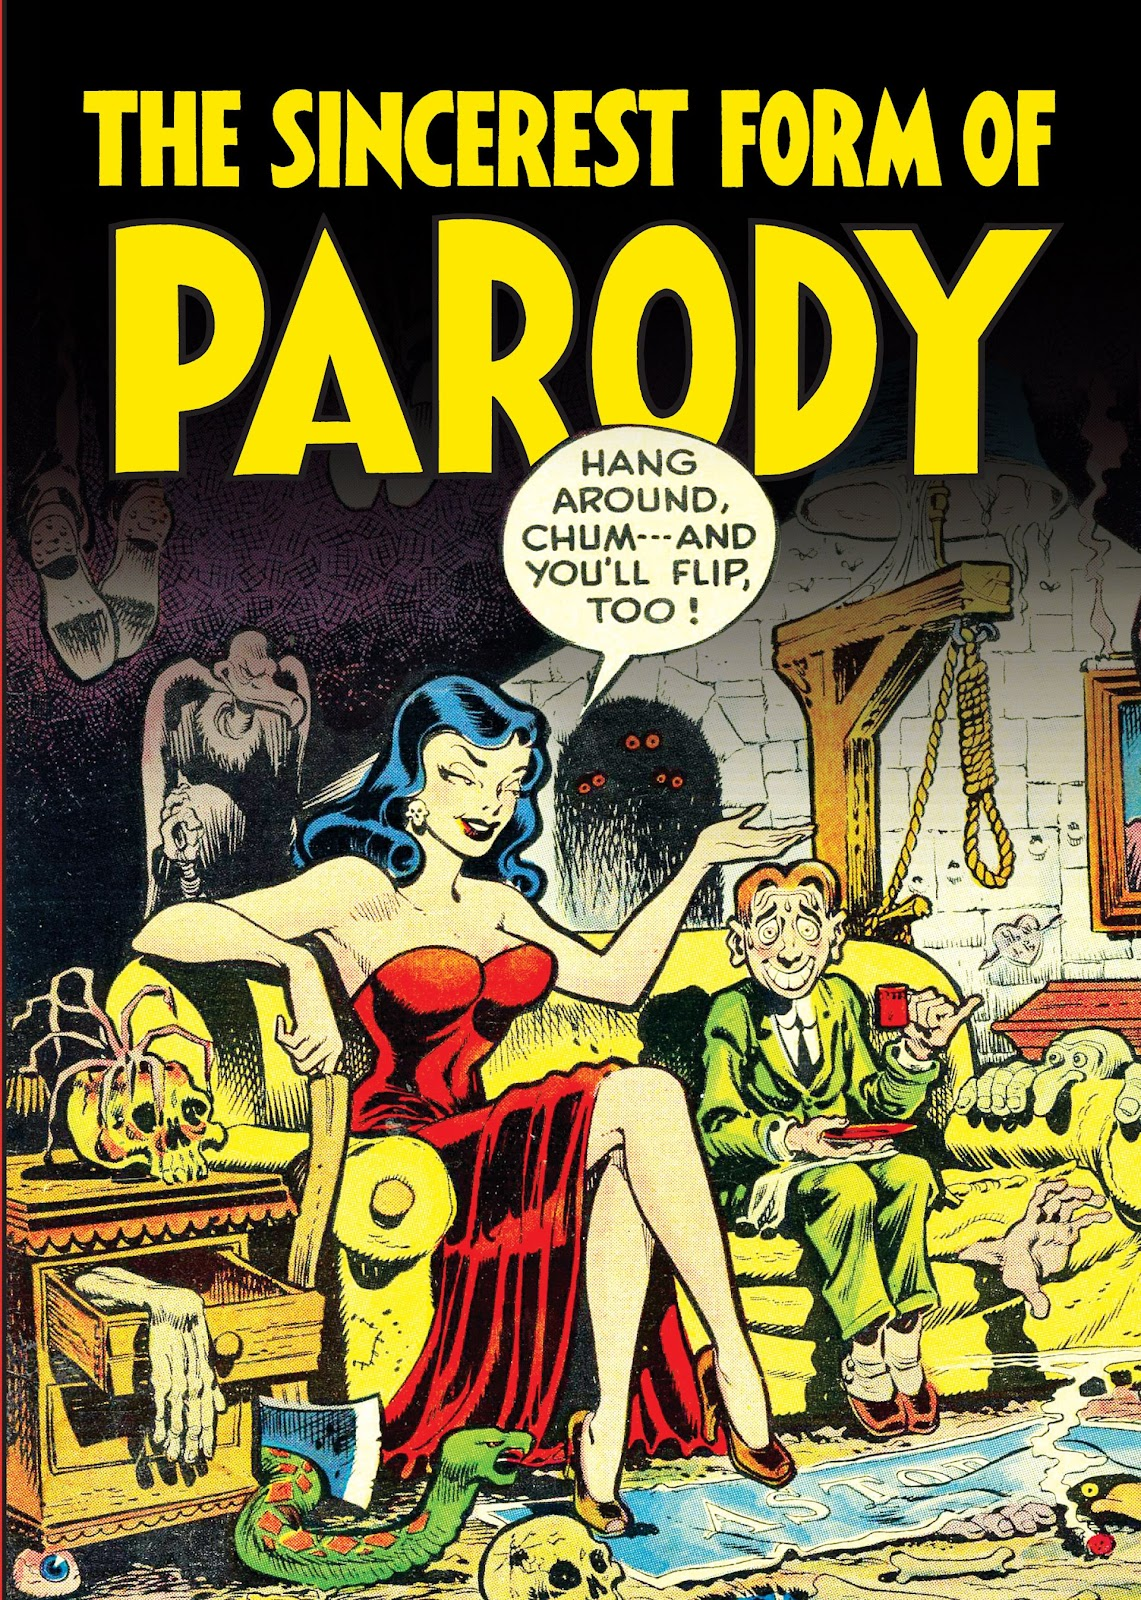 Read online Sincerest Form of Parody: The Best 1950s MAD-Inspired Satirical Comics comic -  Issue # TPB (Part 1) - 1